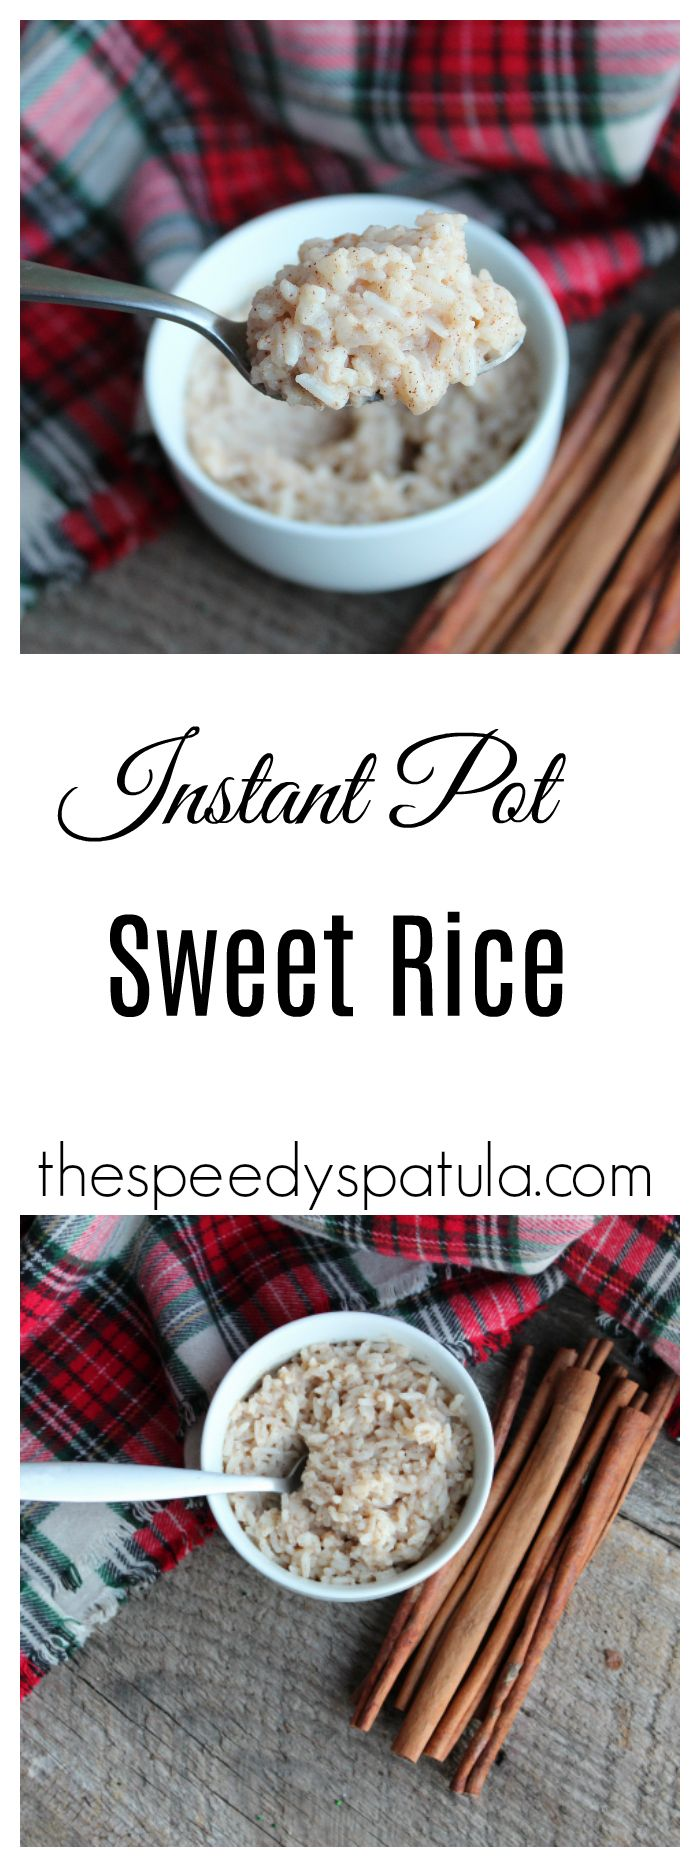 Instant Pot Sweet Rice | Recipe | Crockpot recipes ...